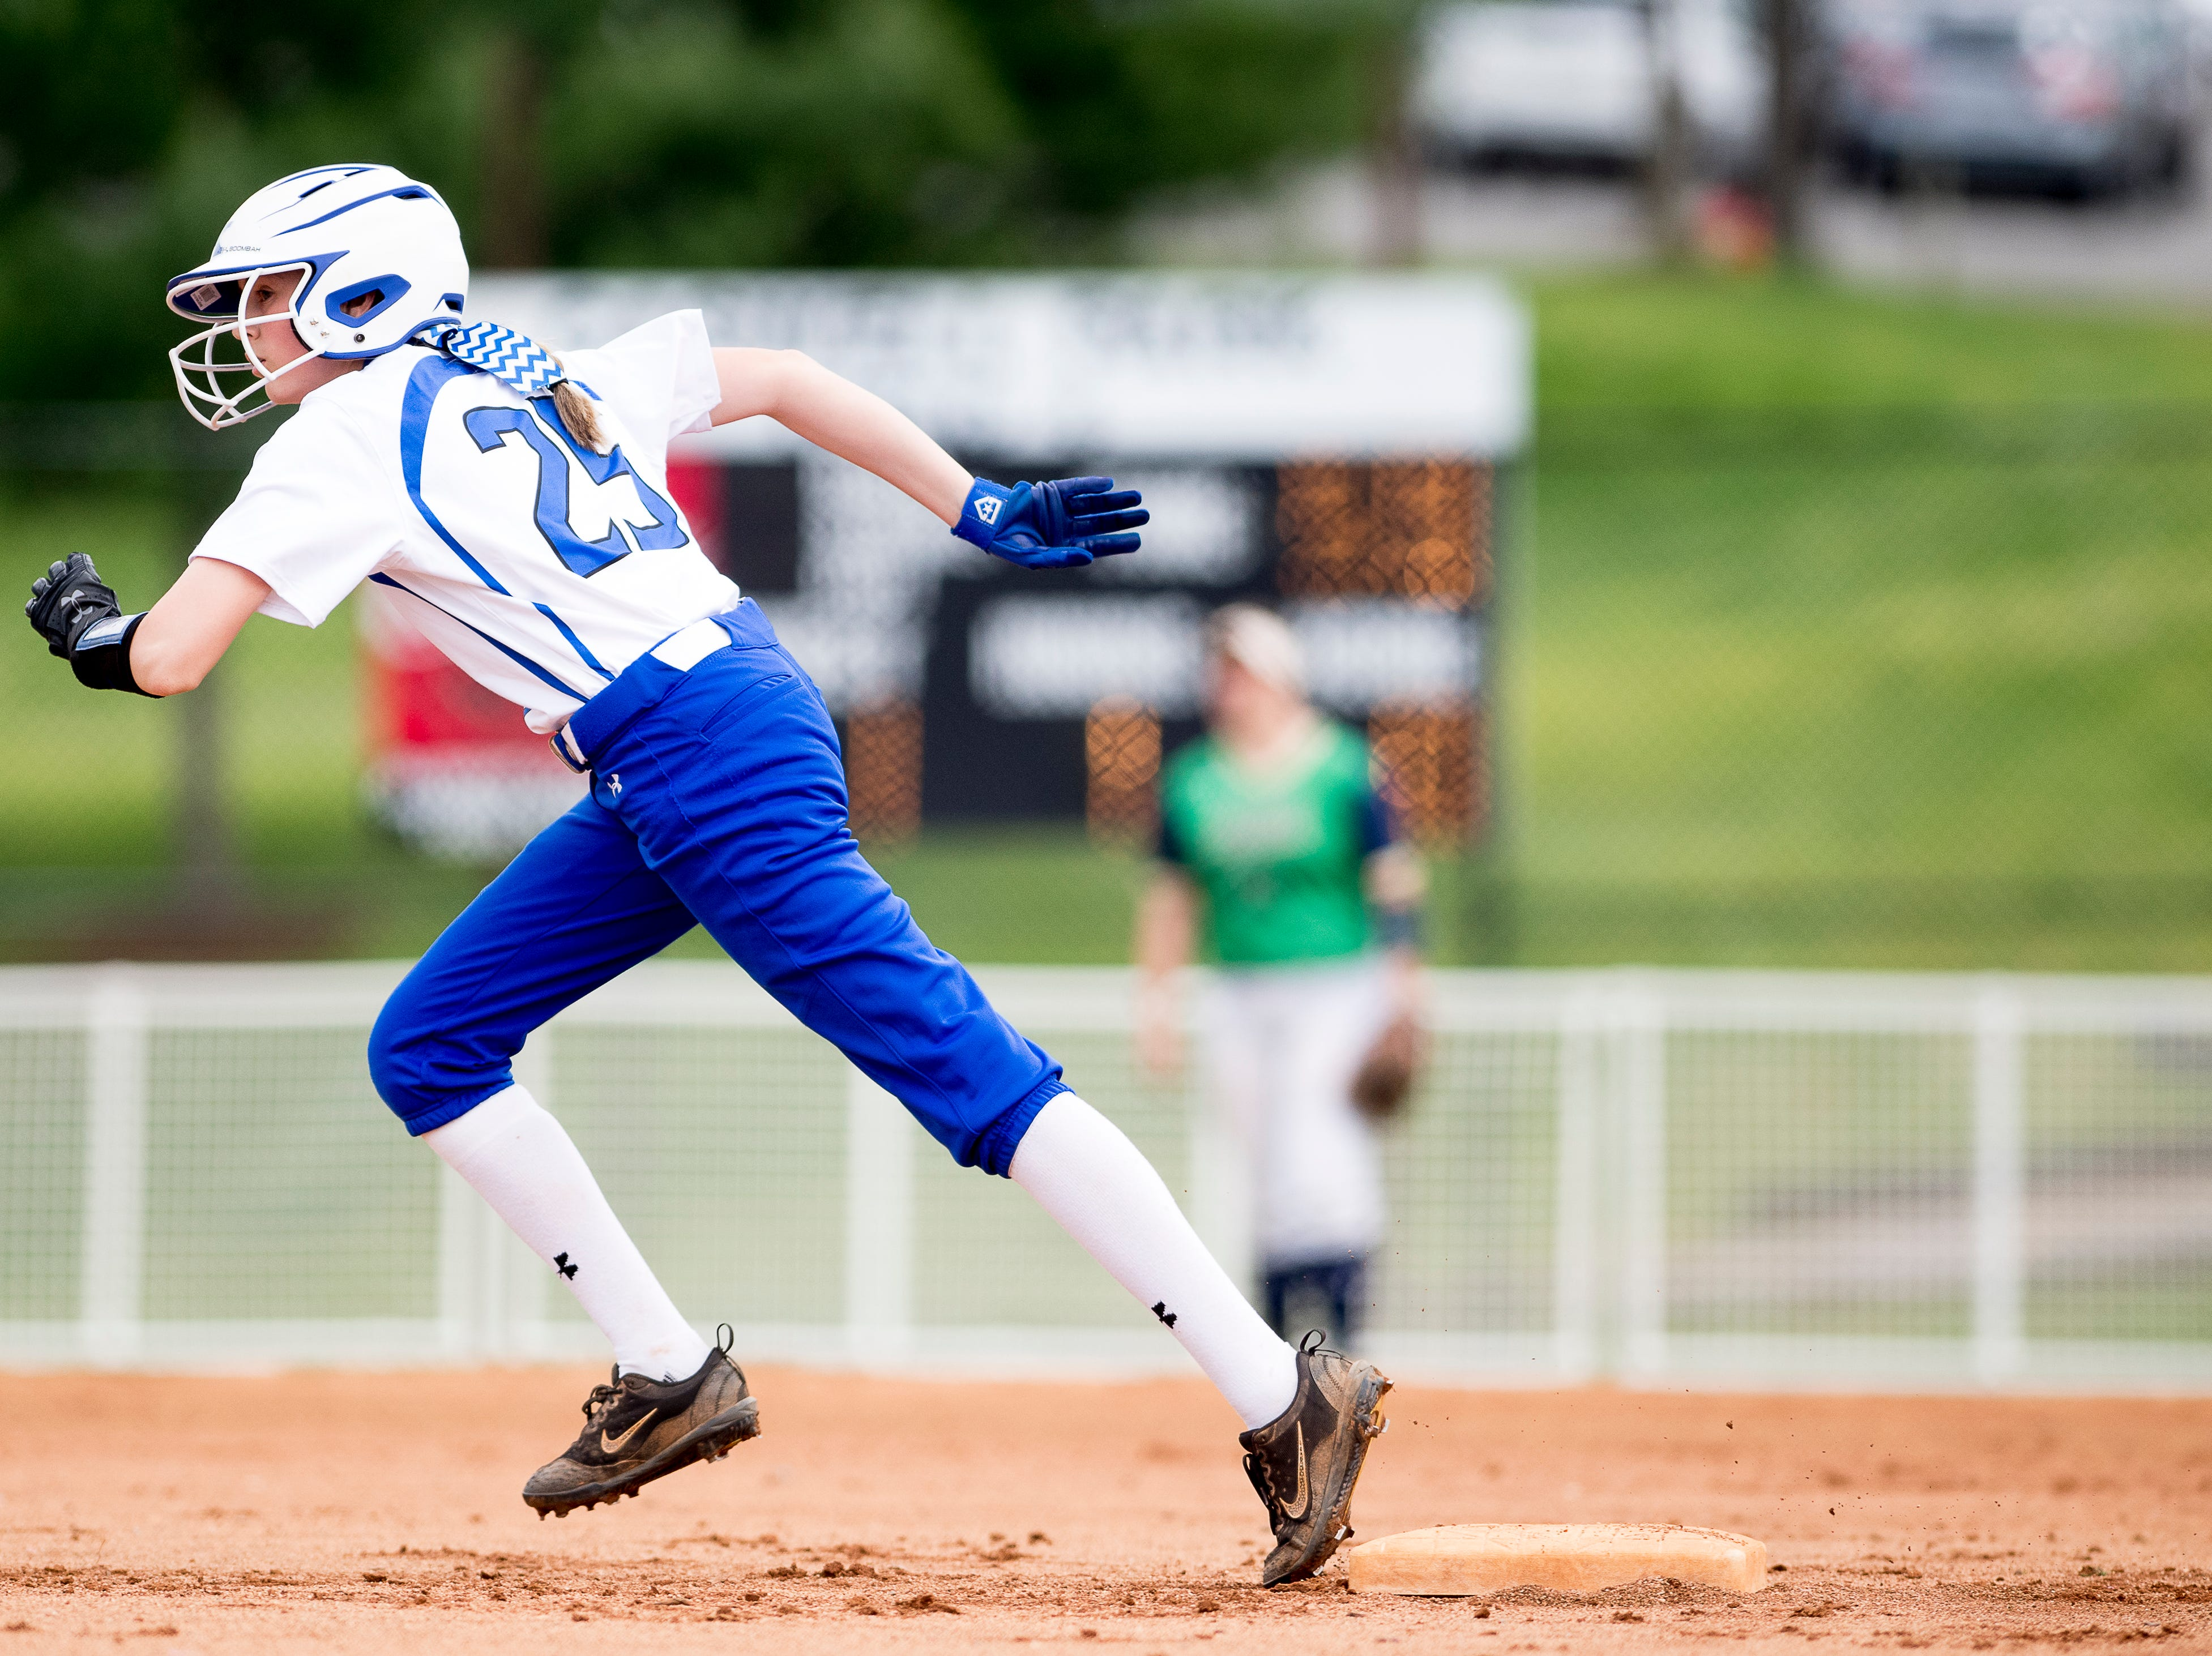 Karns' Elizabeth Breeden (25) runs to third during a softball game between Catholic and Karns at Caswell Park in Knoxville, Tennessee on Friday, April 12, 2019.